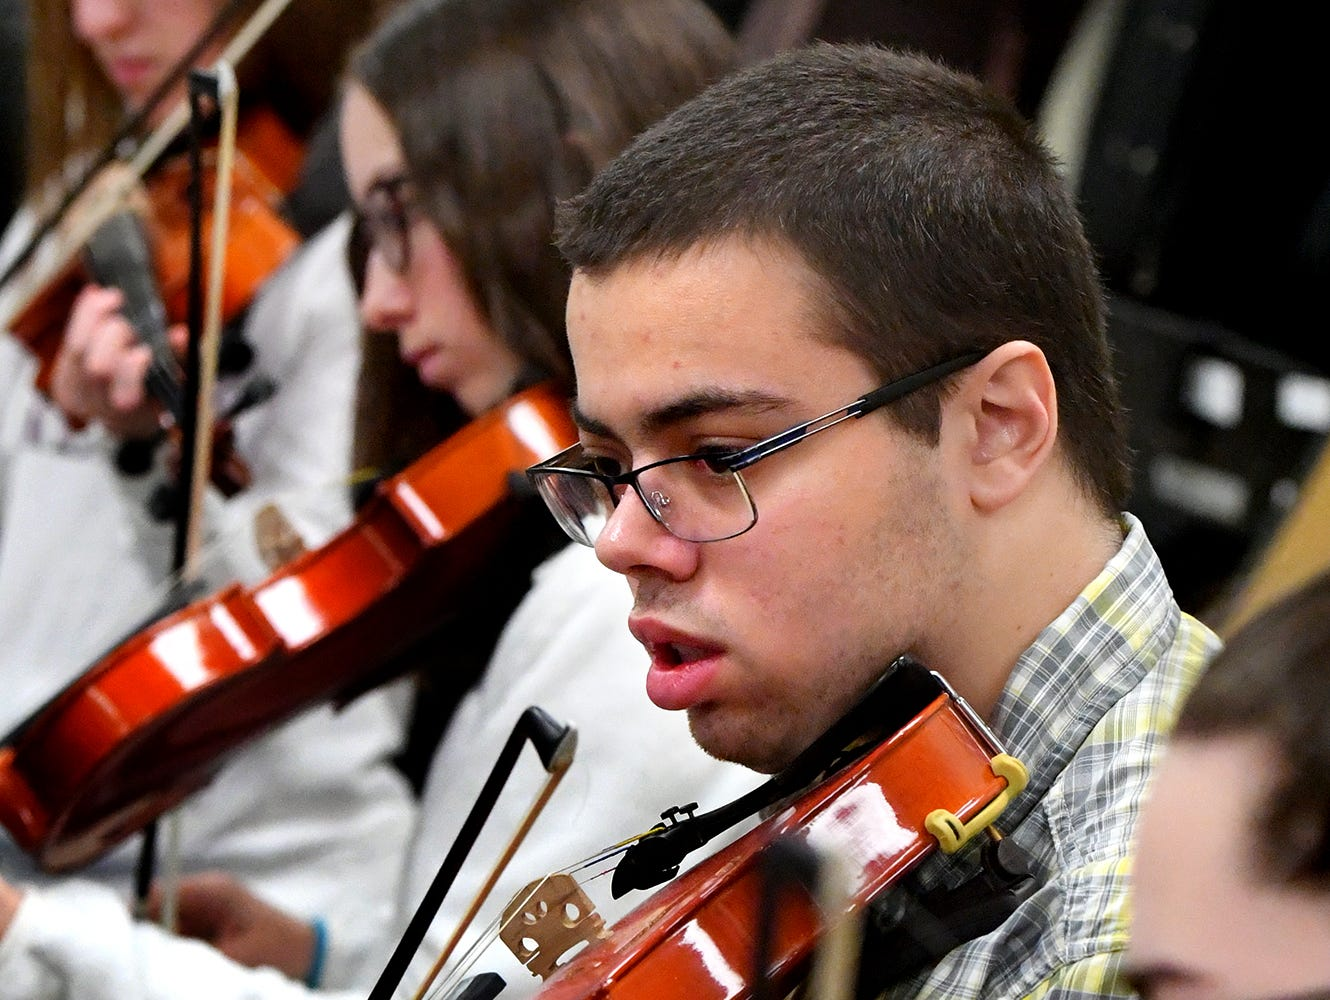 """Red Lion student Chance Riddle plays violin during an orchestra rehearsal at the school Friday, March 1, 2019. The orchestra is fine-tuning """"Obsidian Rainbow"""" which was written by Red Lion graduate and New York composer Derek Cooper. He is premiering the piece via the Red Lion Area High School string orchestra on Wednesday, March 6. Cooper will be at the school working with the orchestra beforehand. Bill Kalina photo"""